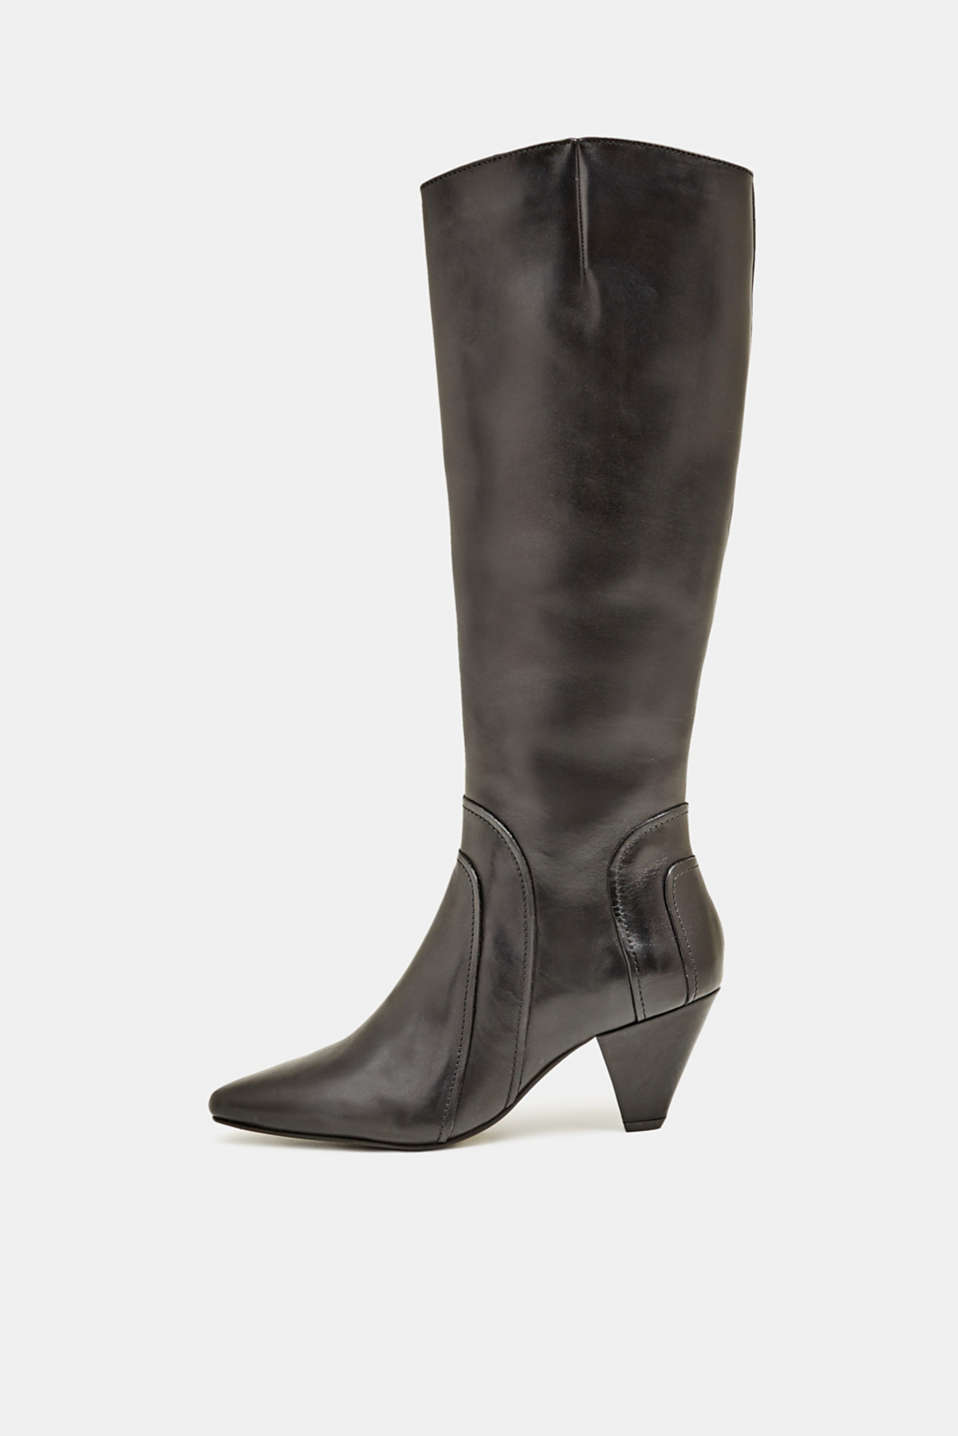 Esprit - Boot with funnel heel, made of leather